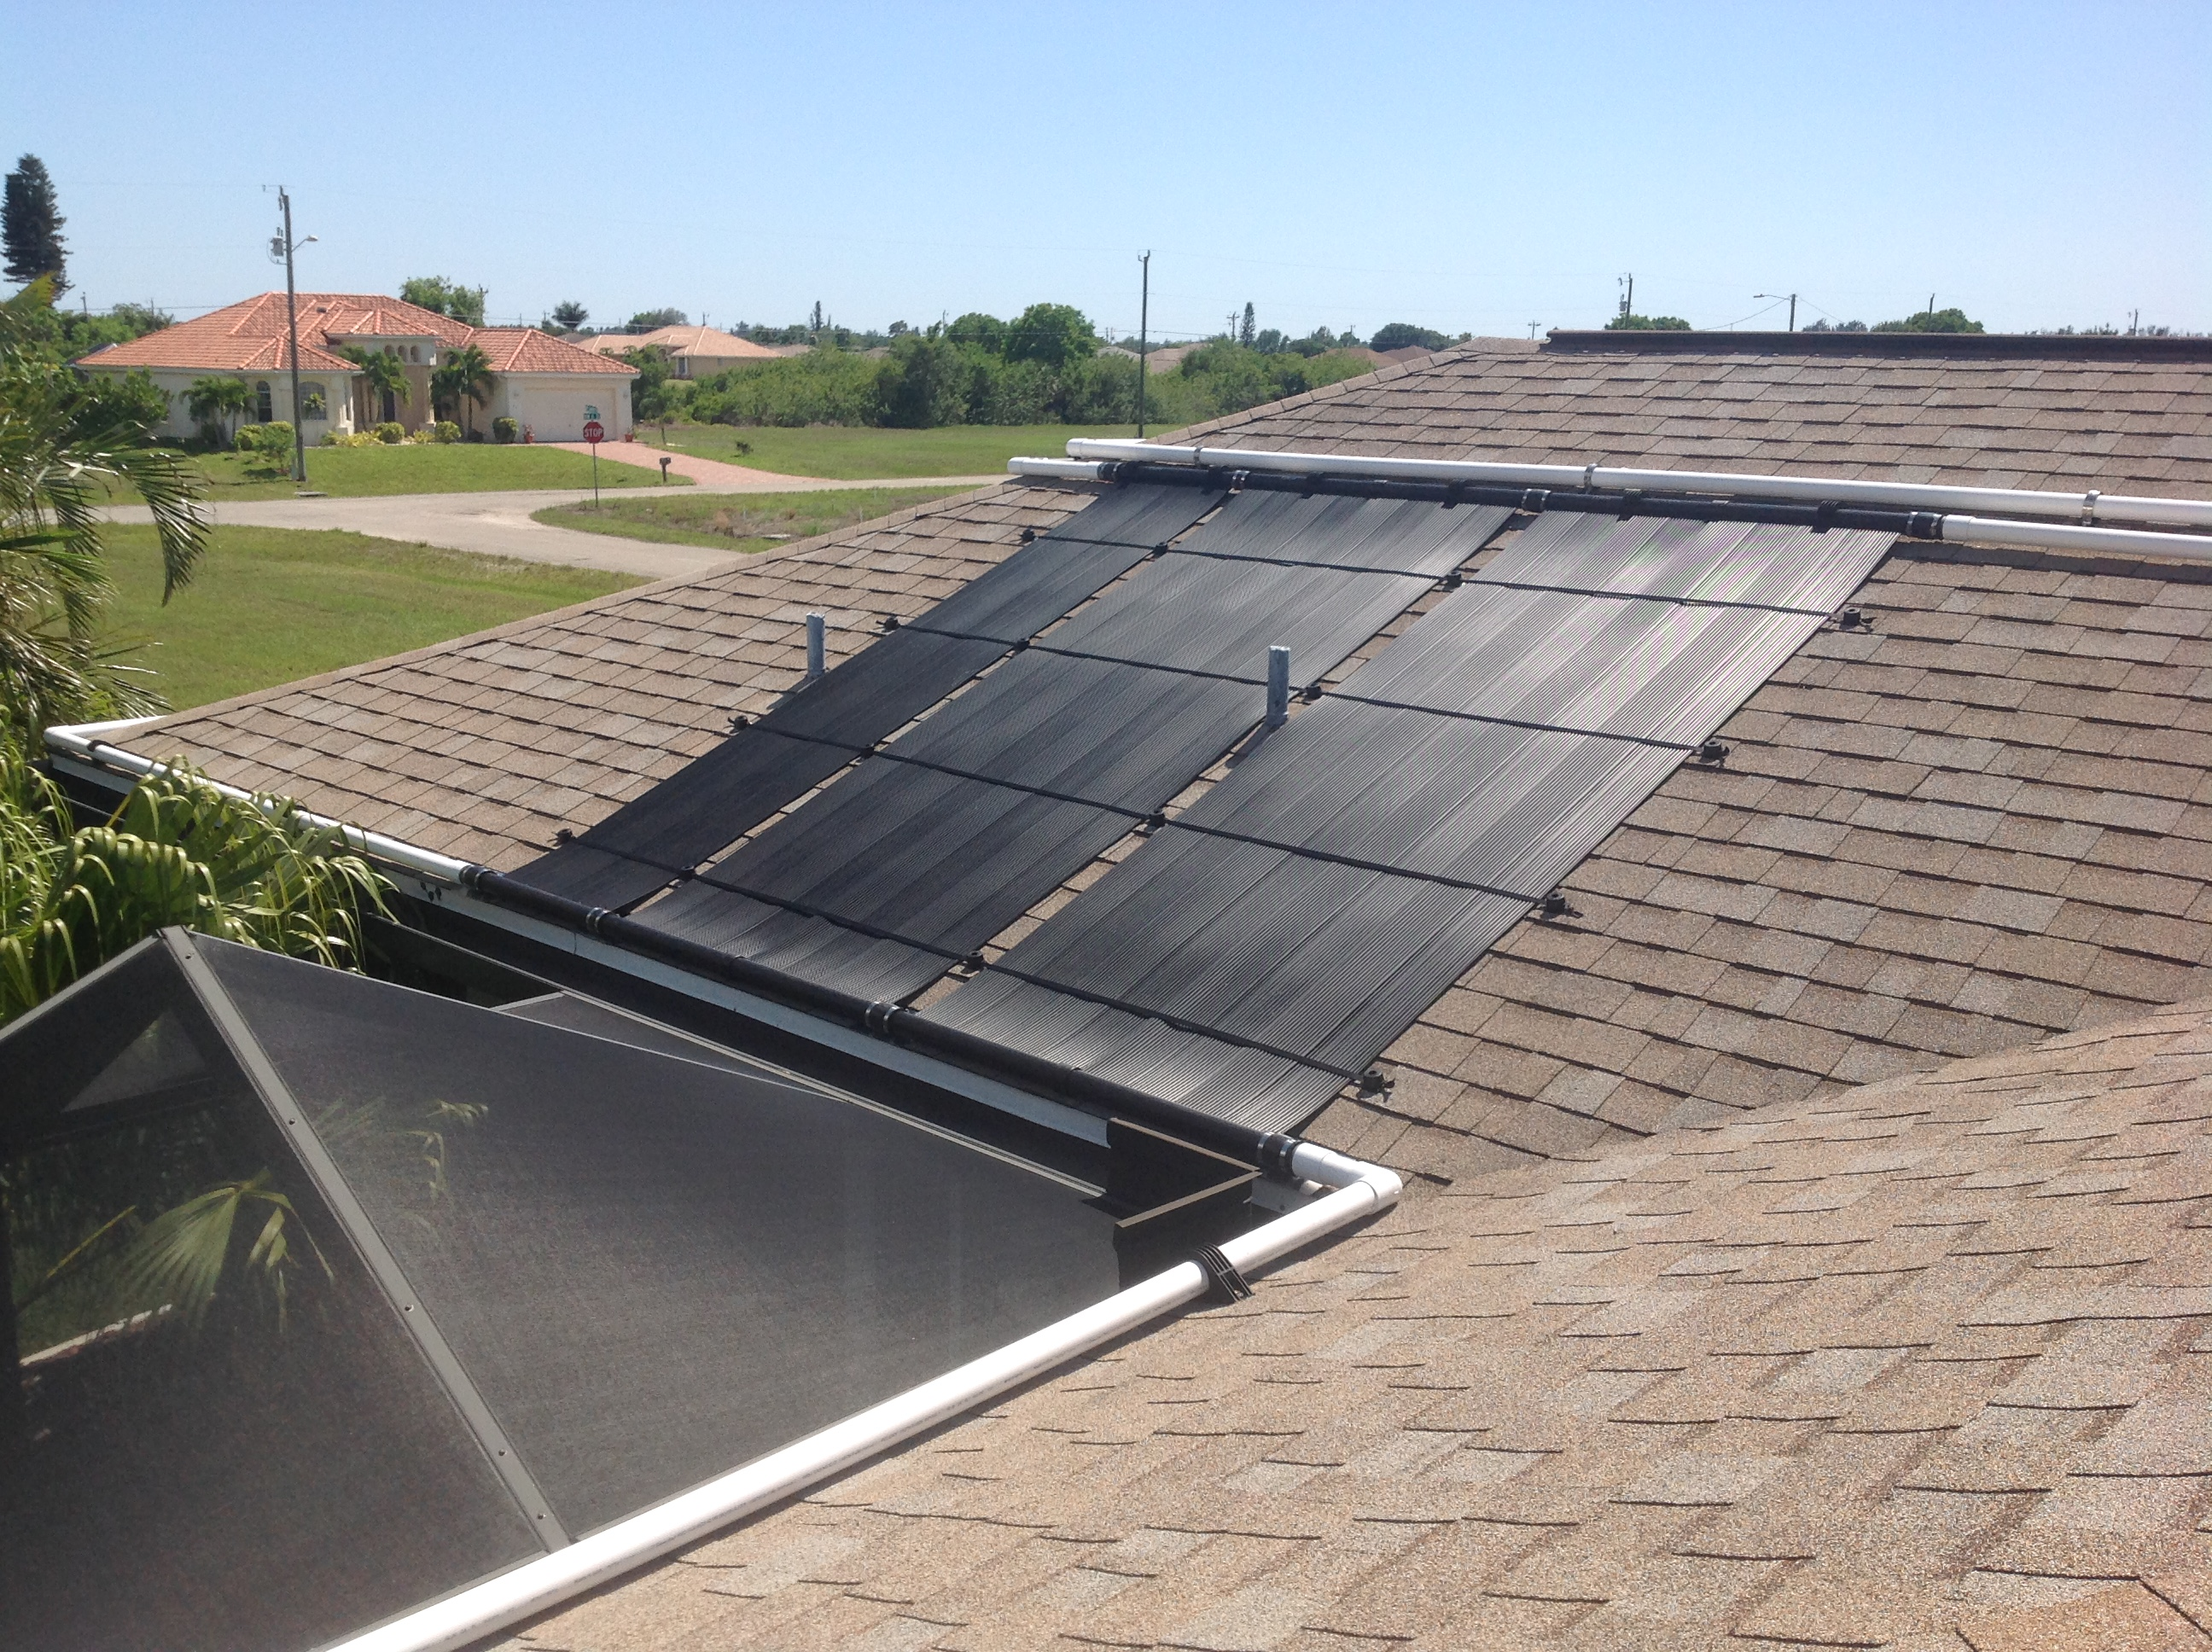 A 2 Foot Wide Solar Pool Heating Collector Helps Fit Panels Between Two Roof  Vents.